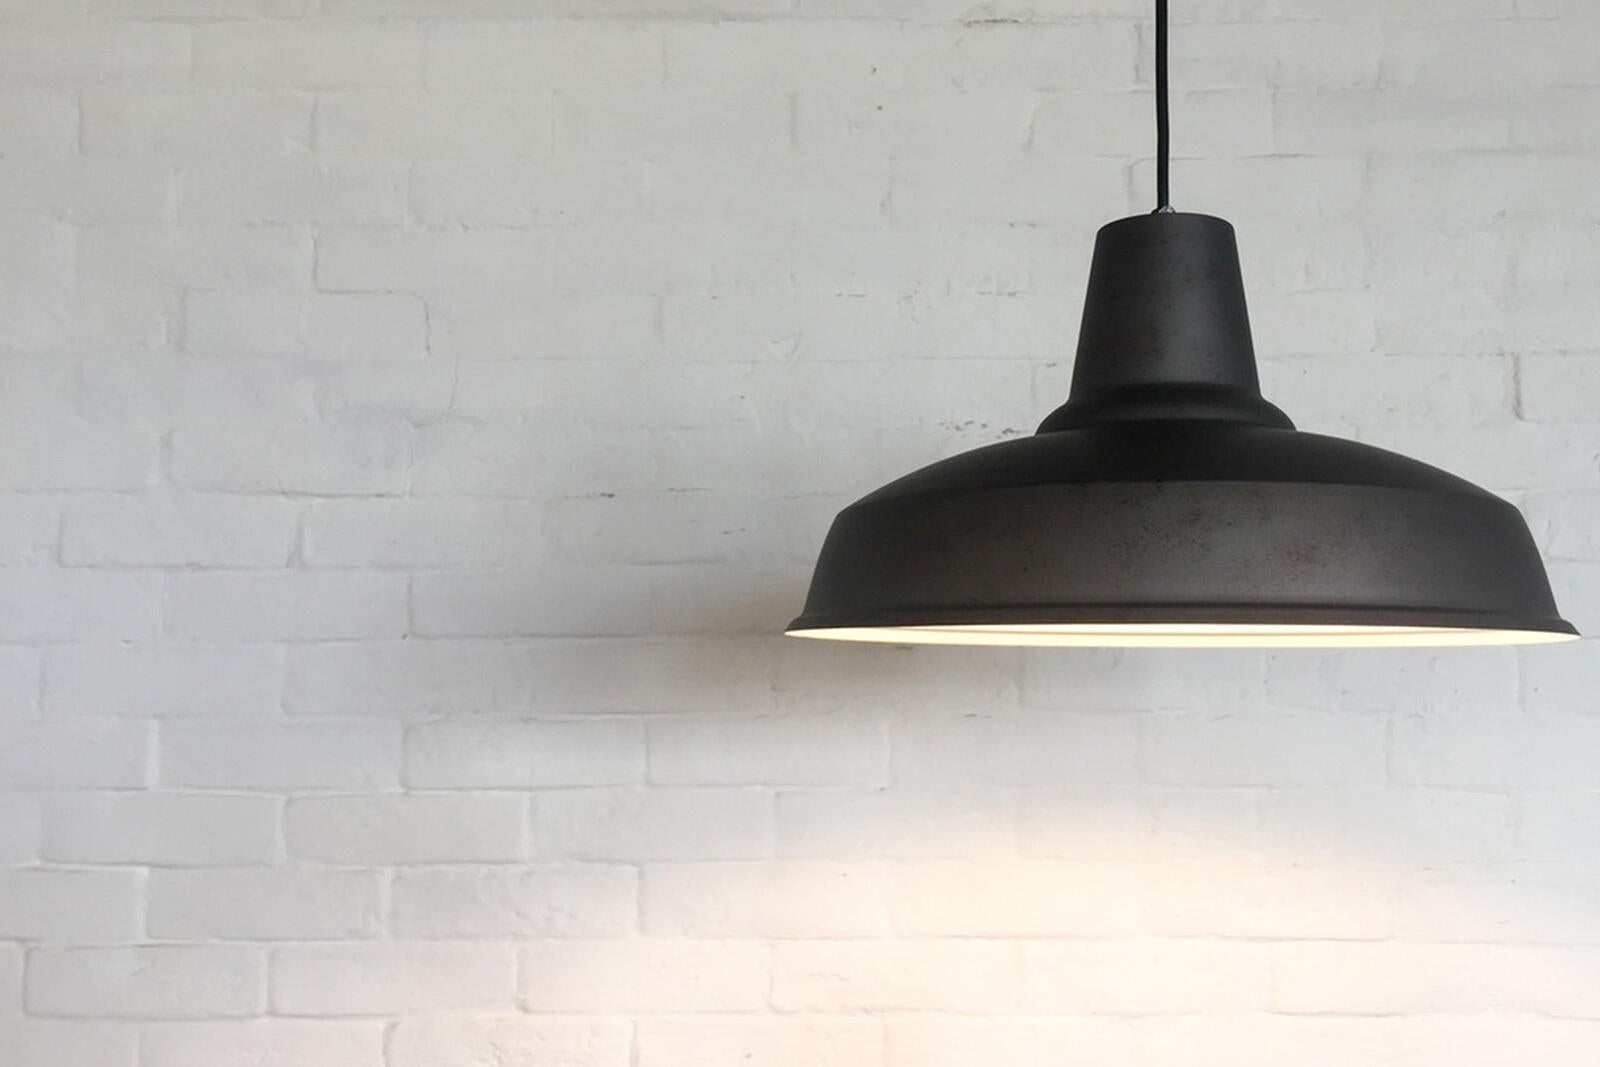 A hanging barn-style light fixture turned on